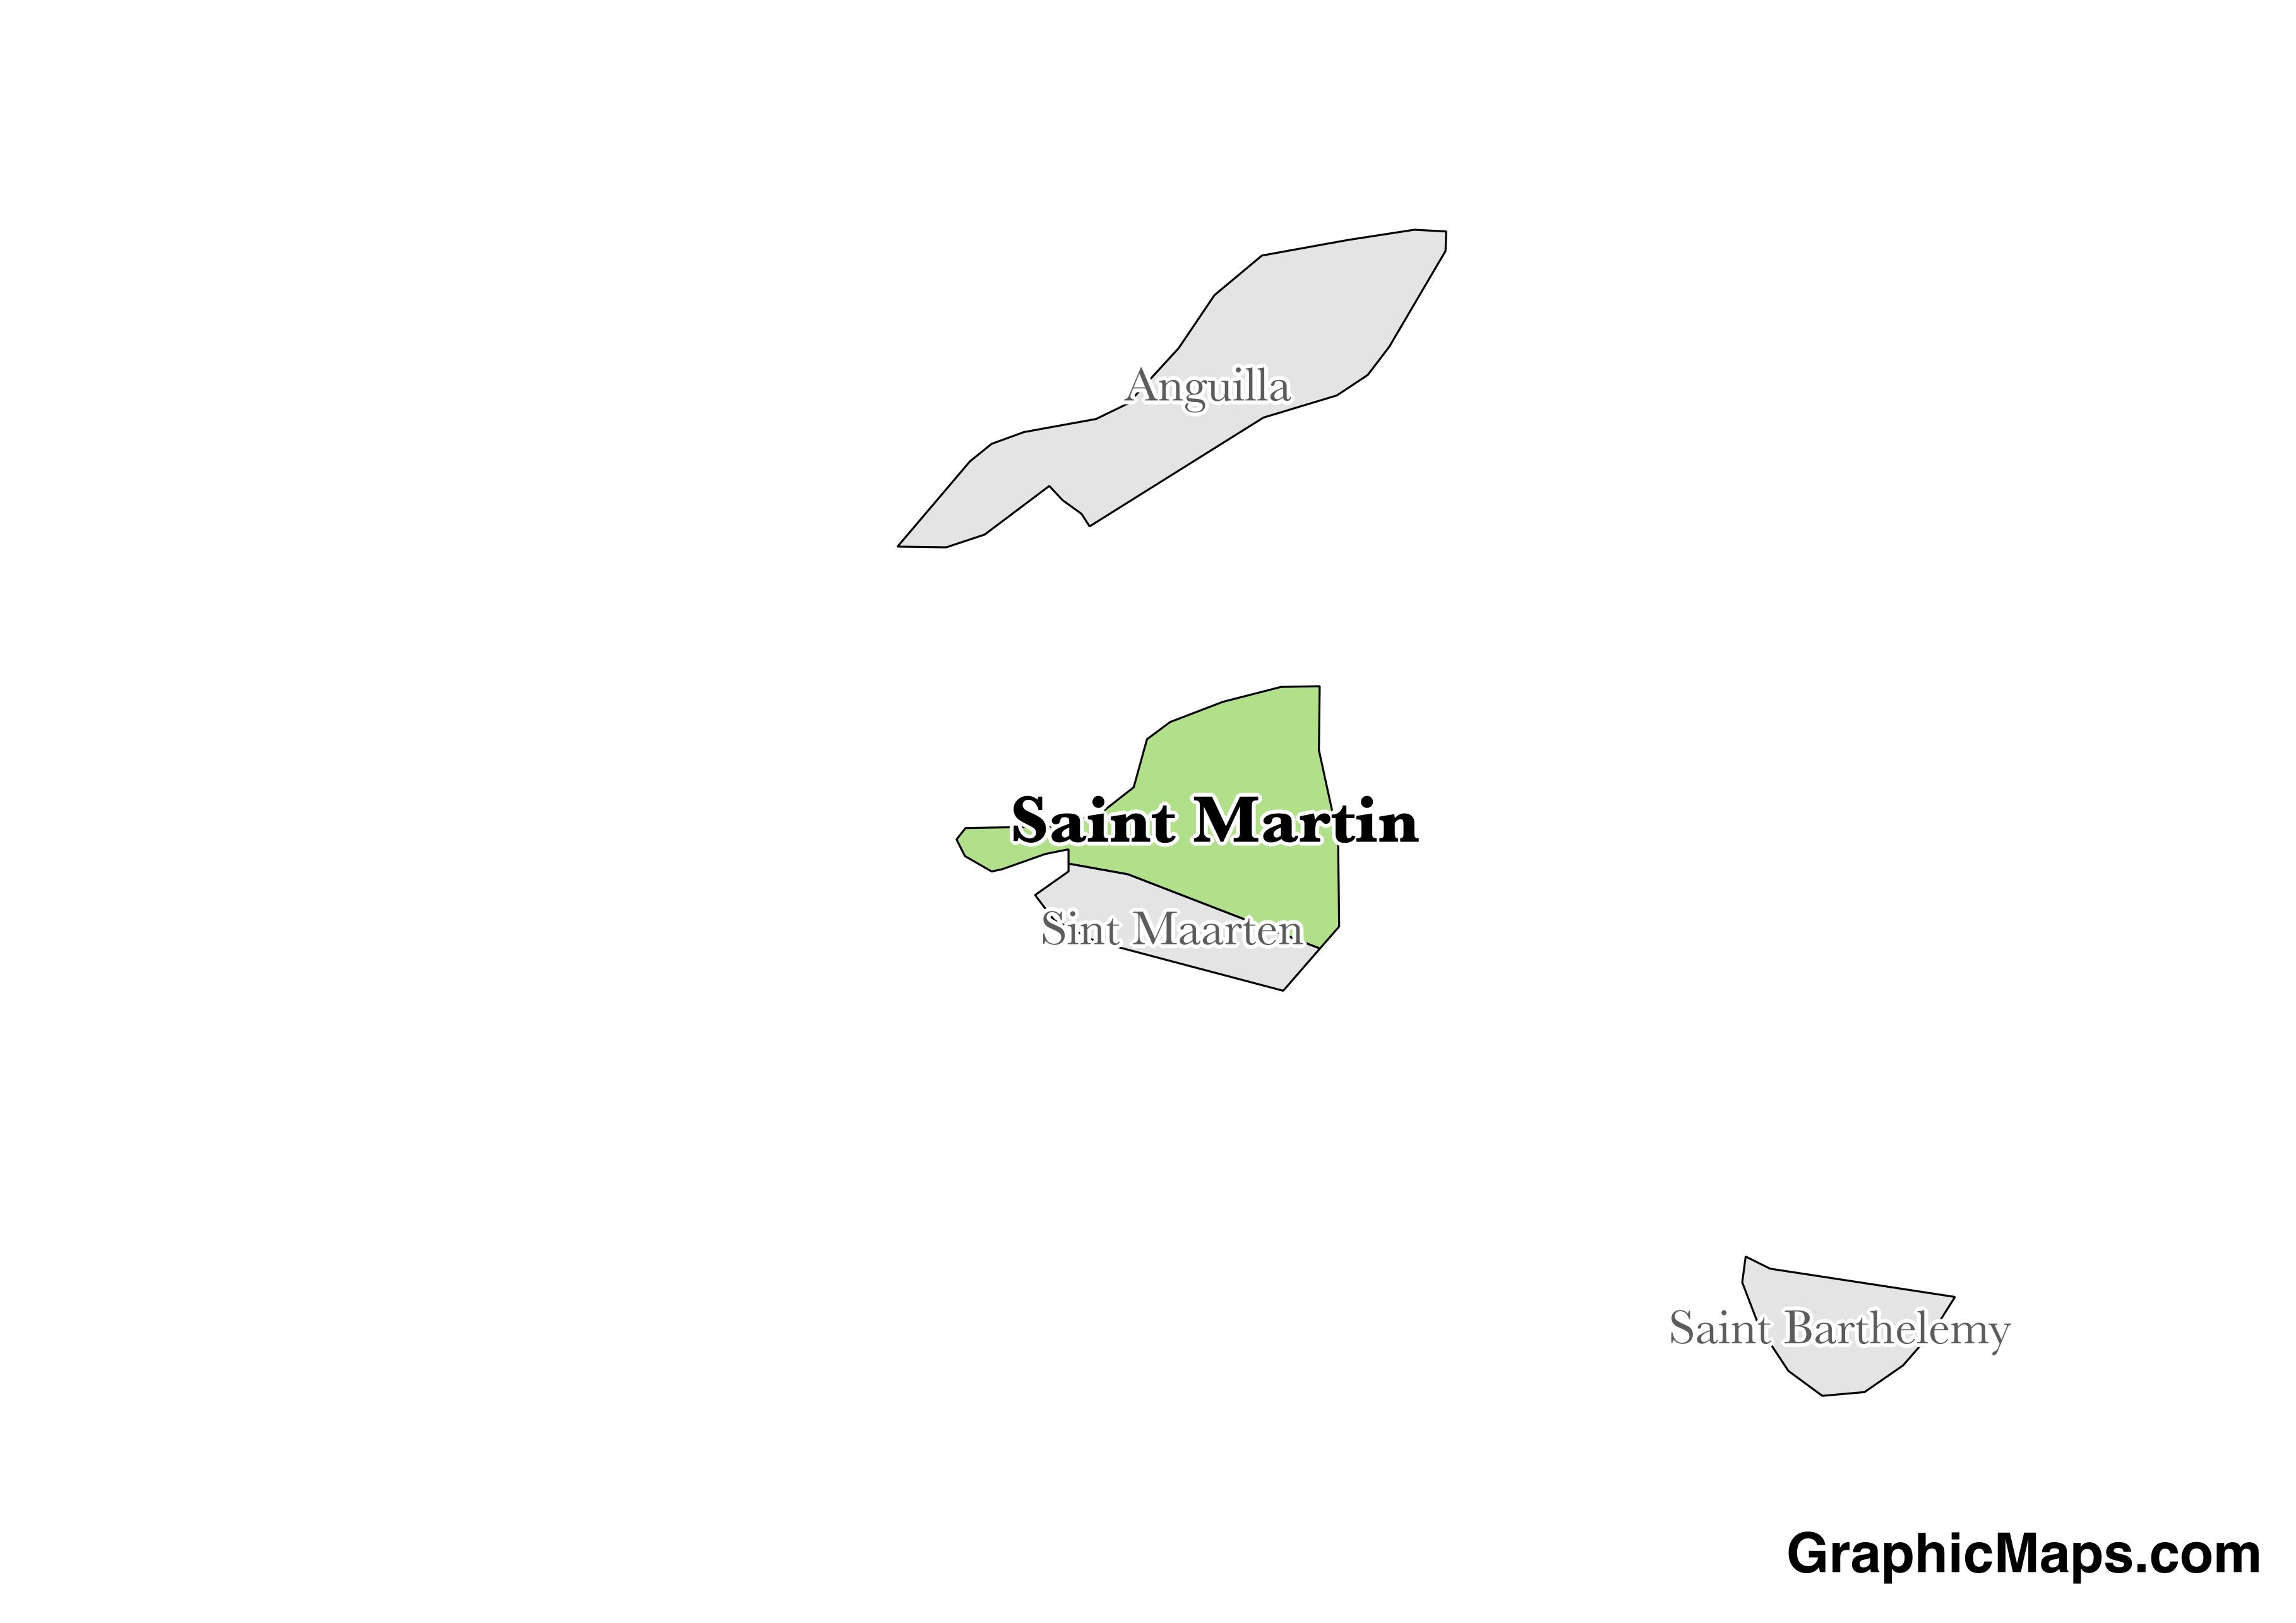 Map showing the location of Saint Martin